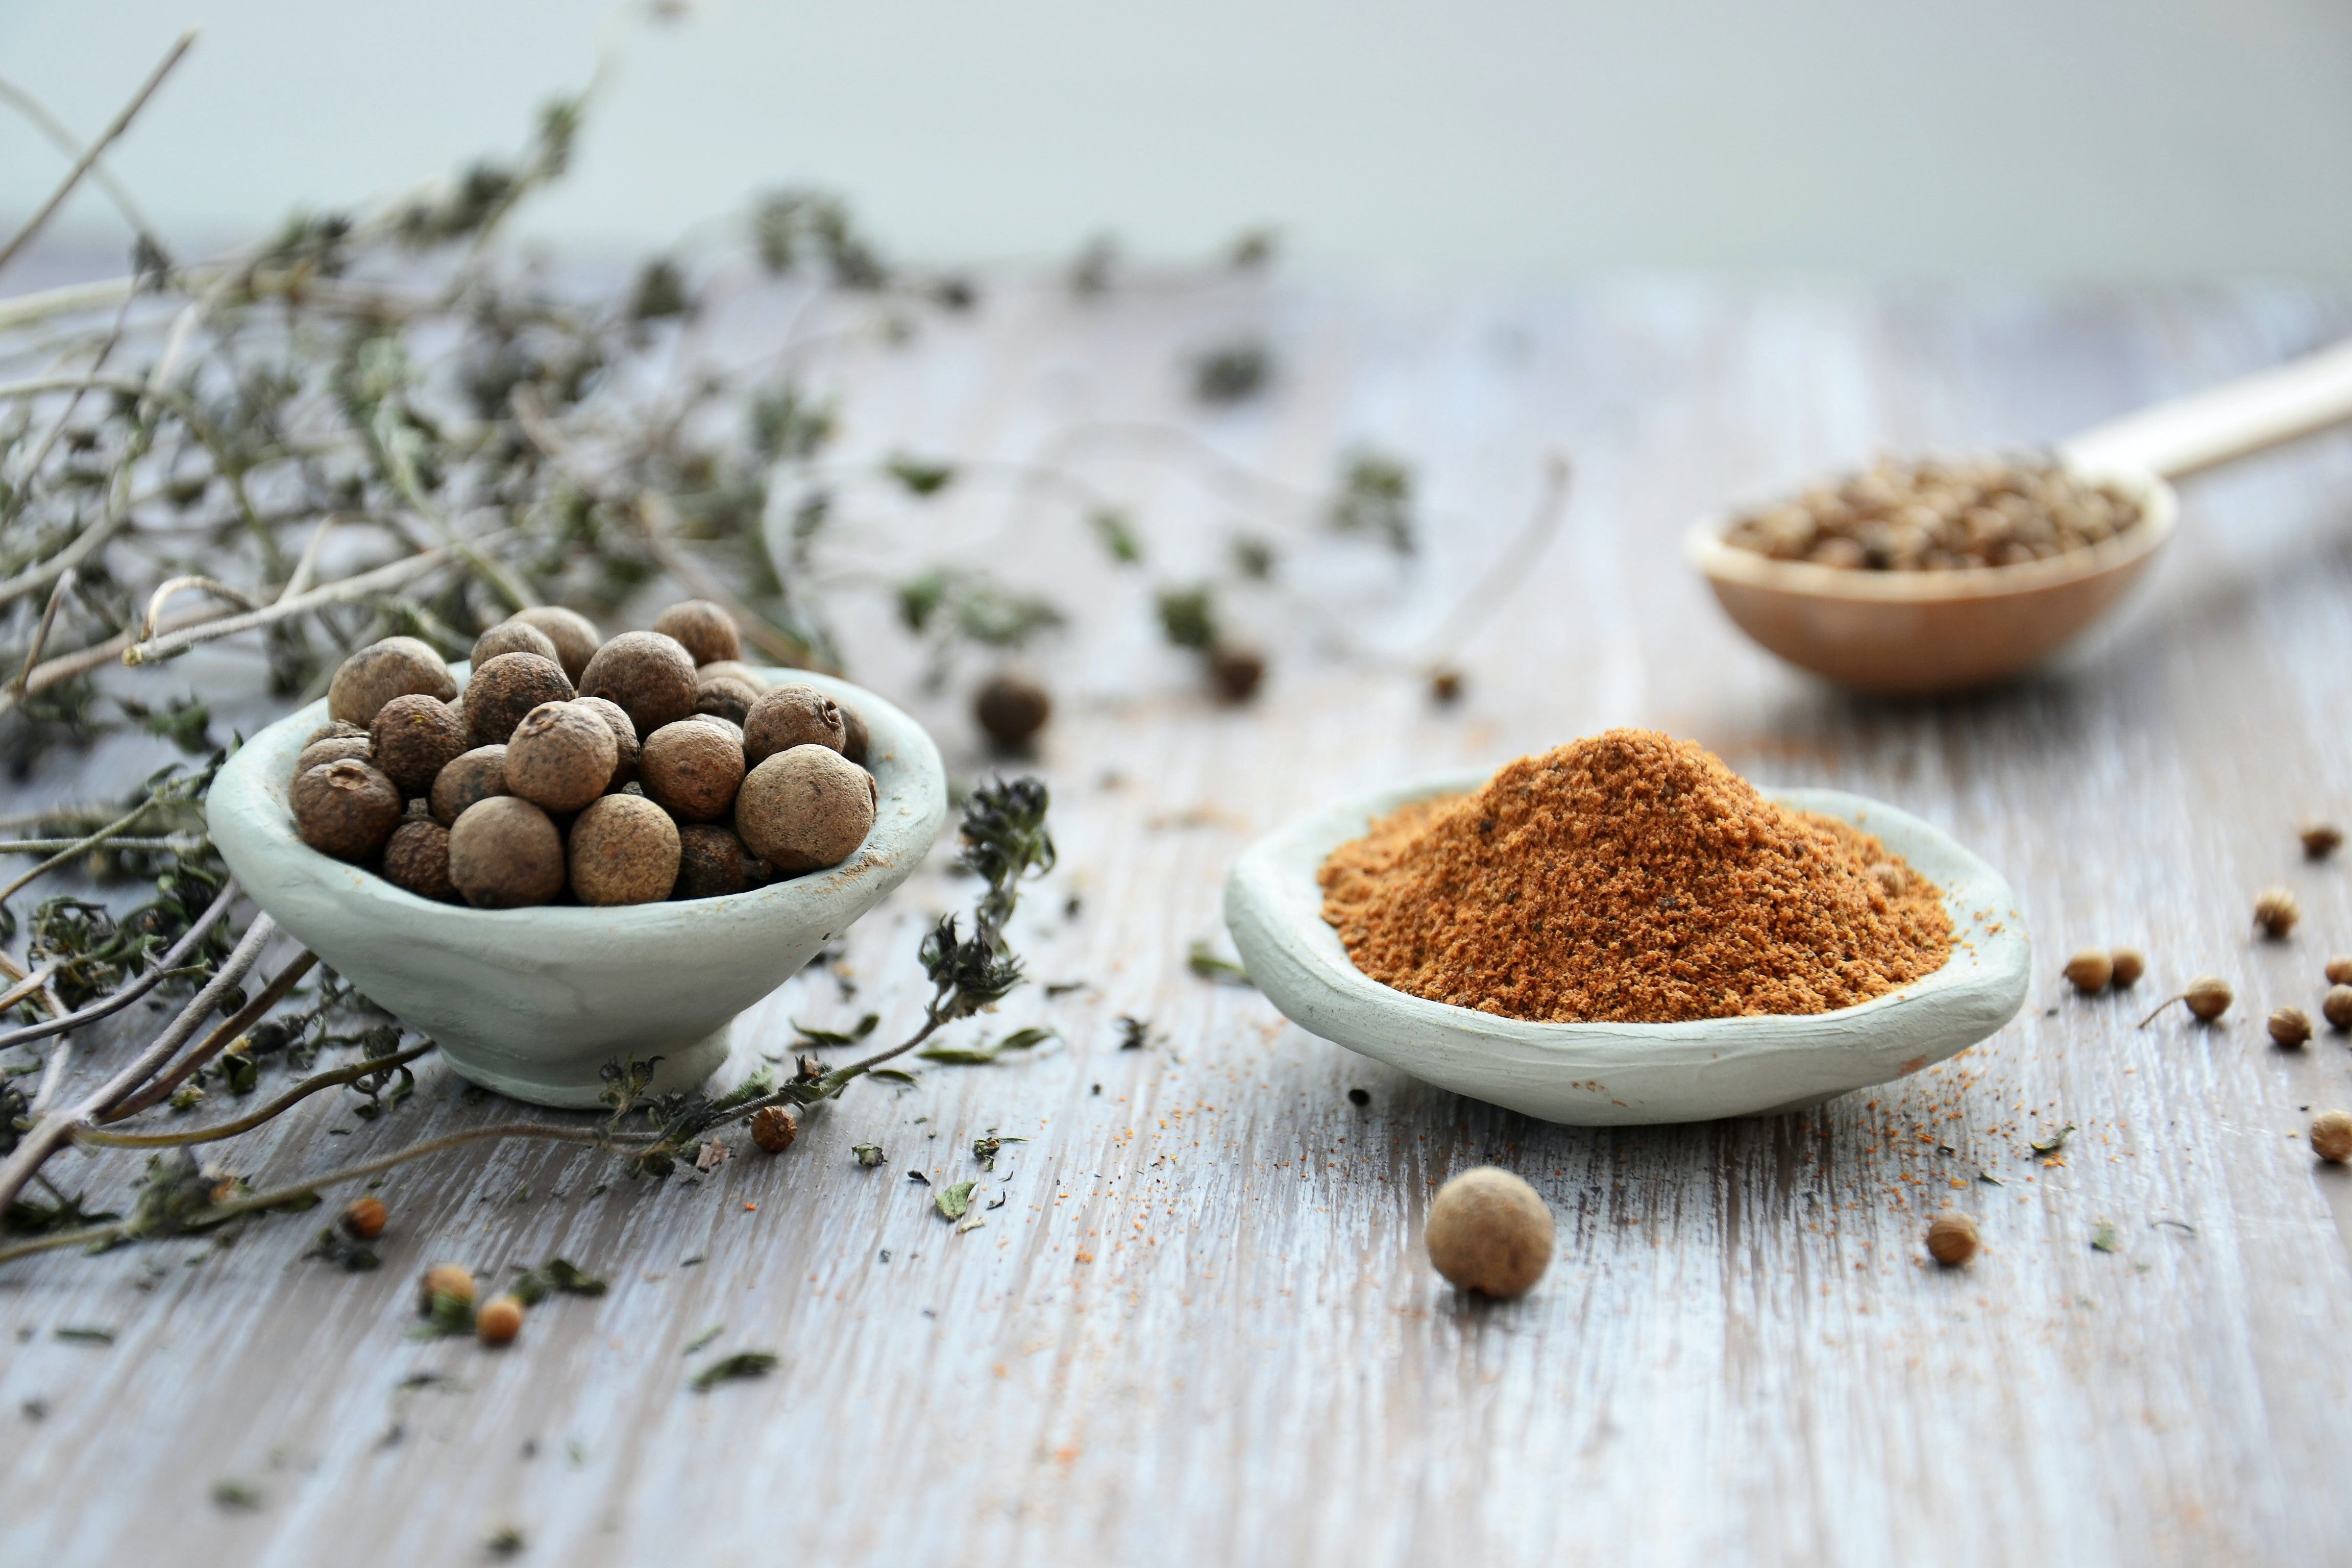 whole and ground herbs and spices